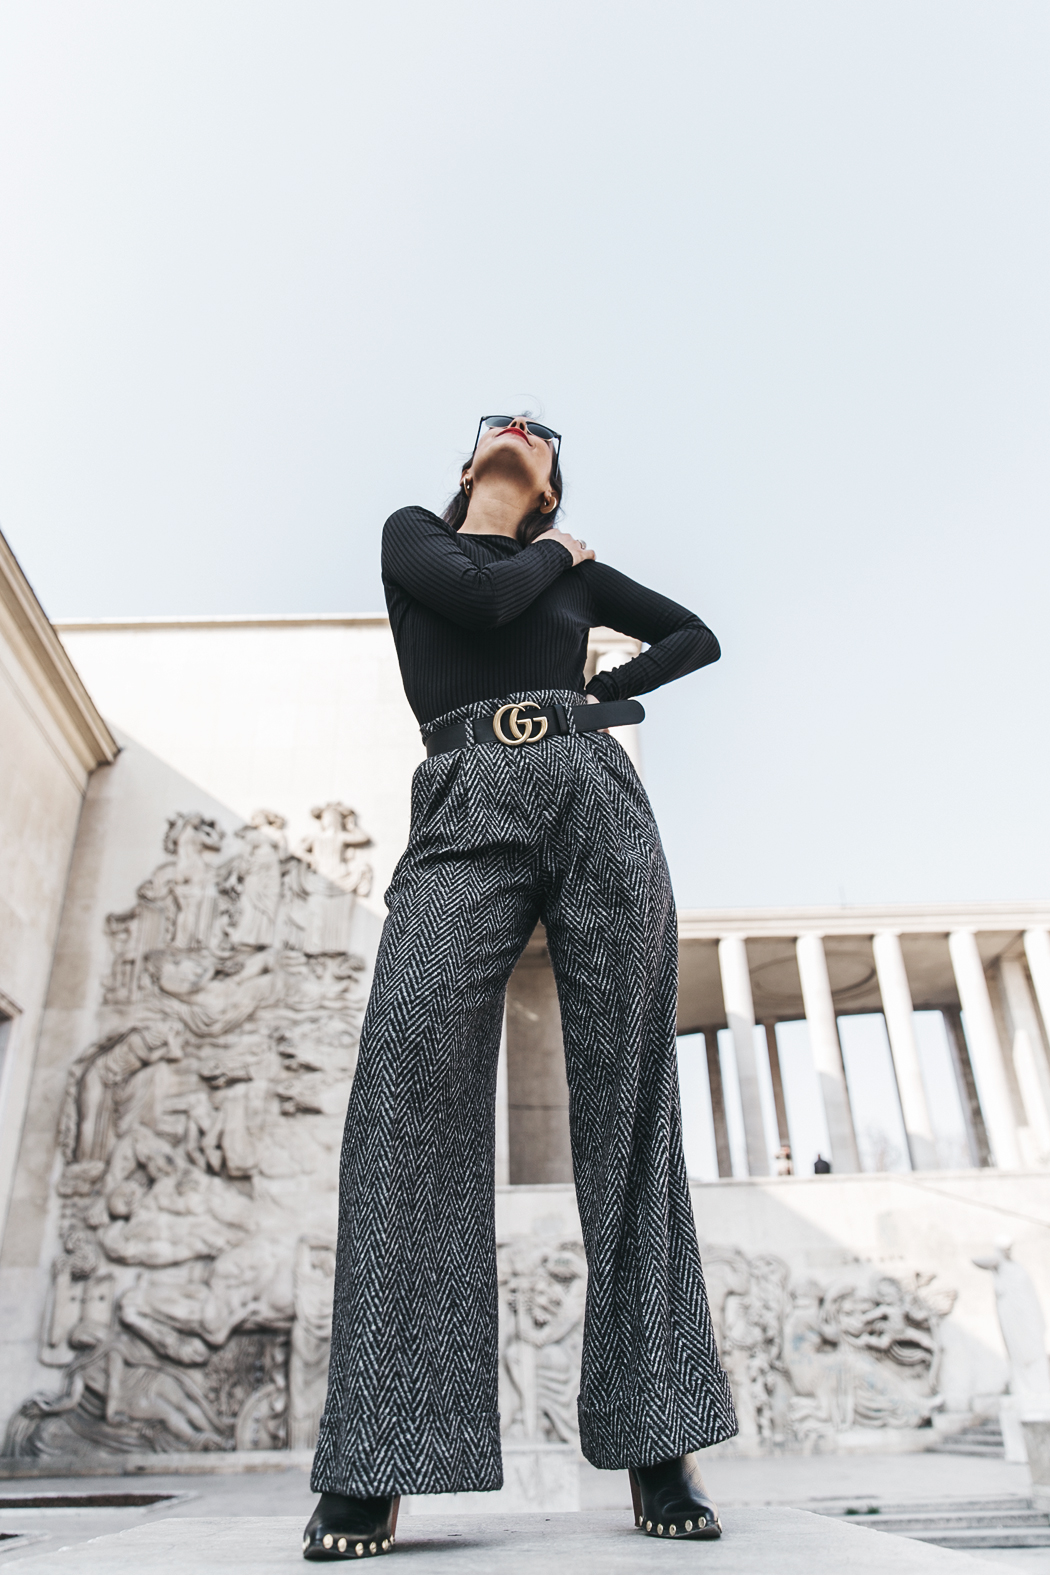 Black_Body-Leather_Jacket-Celine_boots-Gucci_Belt-Wide_Leg_Trousers-Street_Style-32